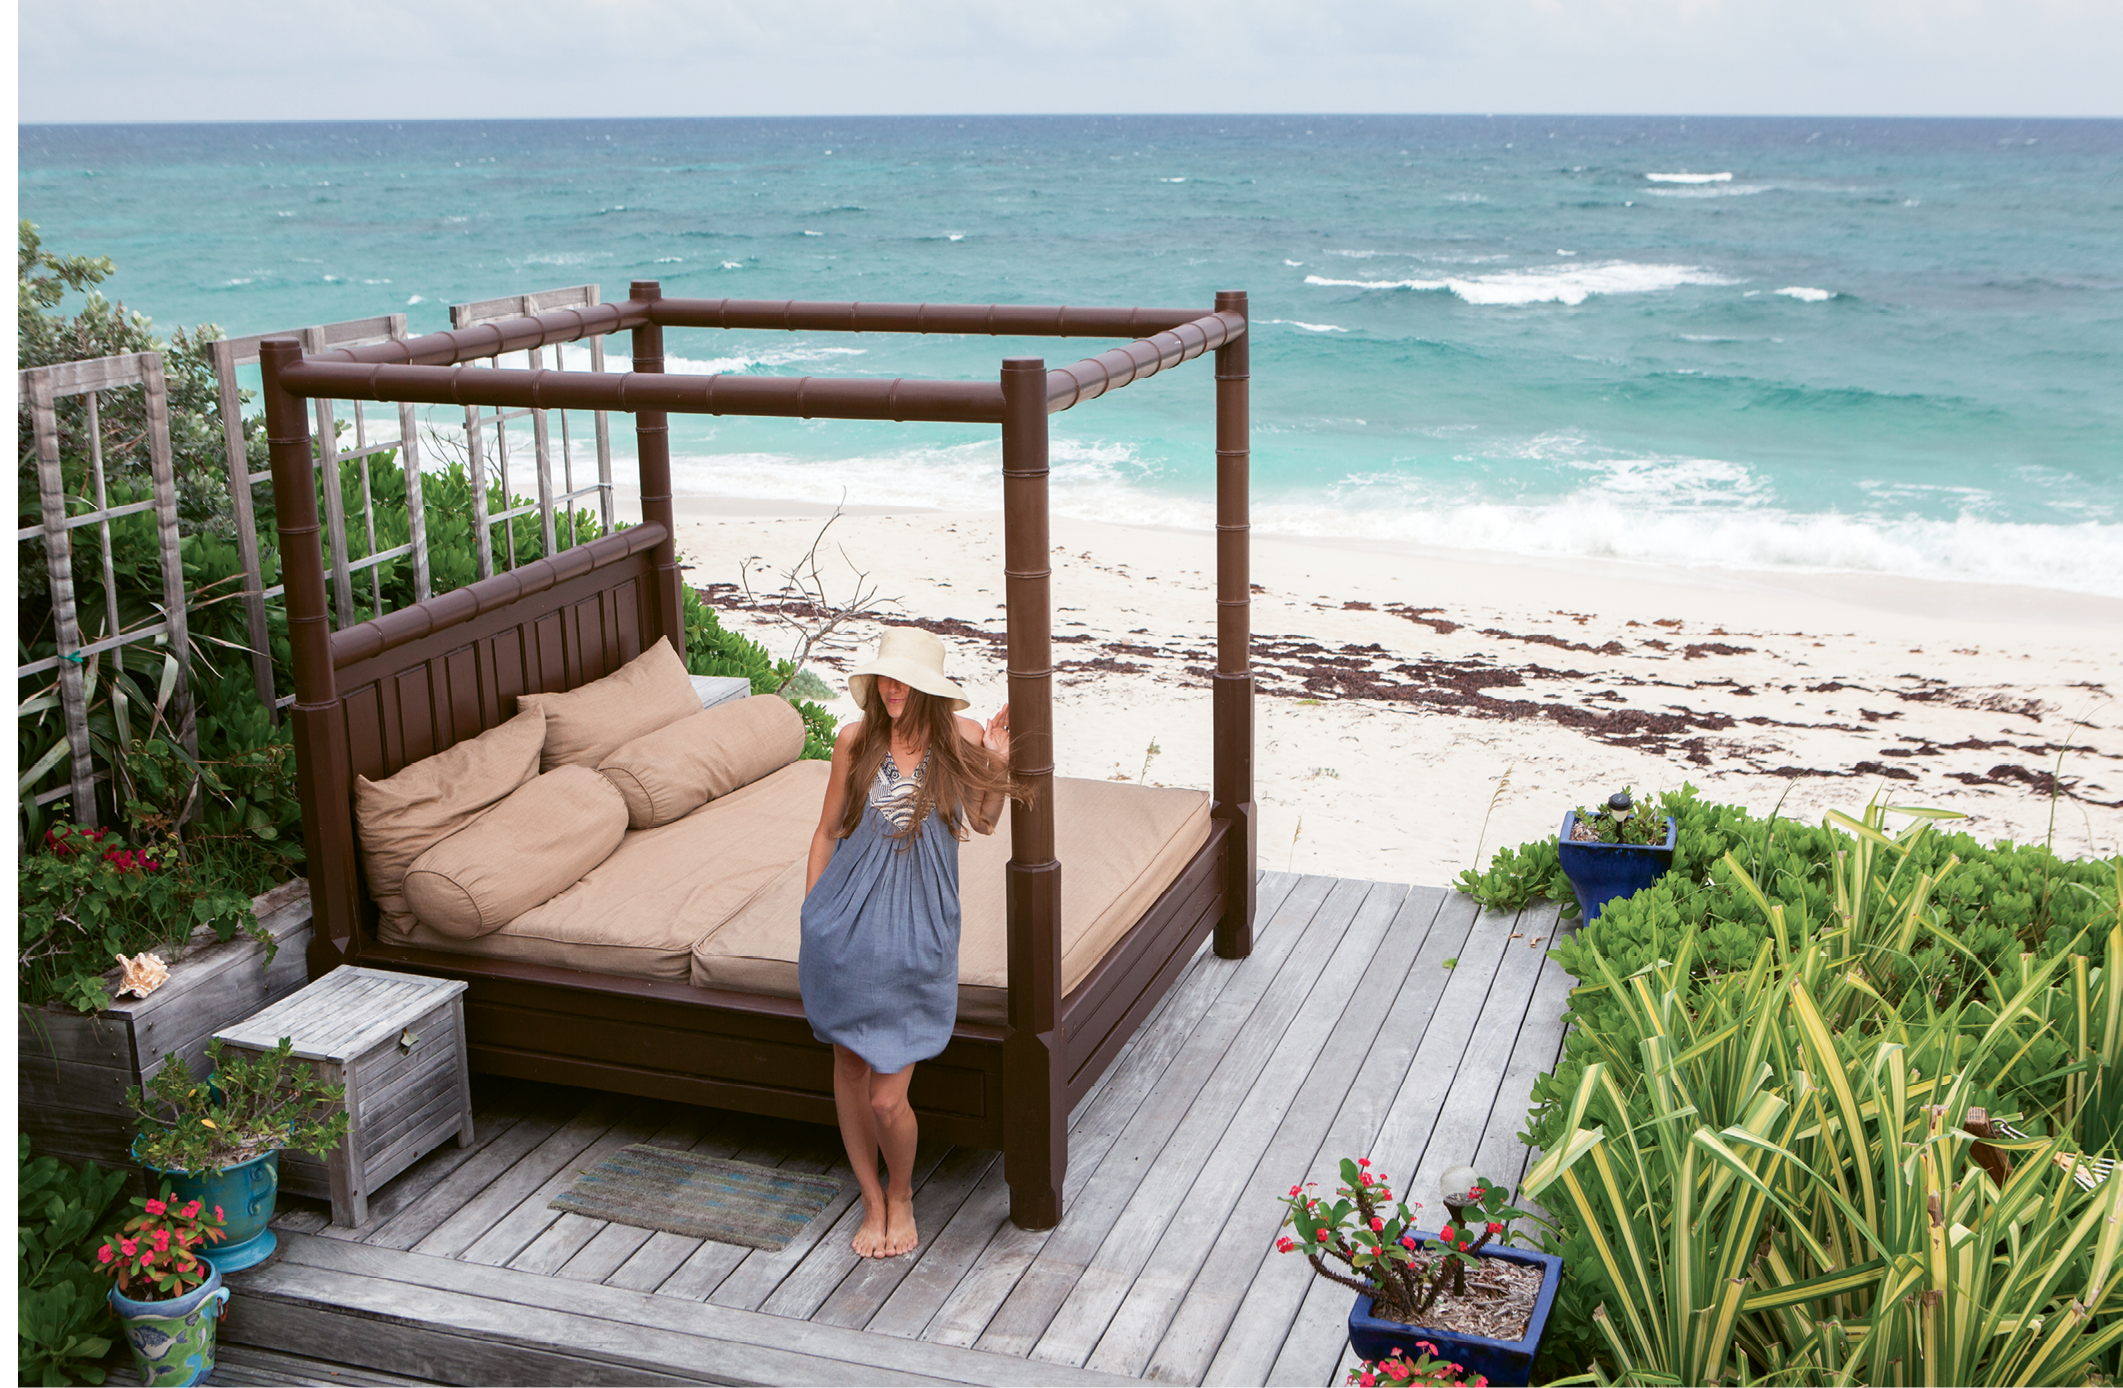 A cozy perch at Leapin' Lizards' oceanfront digs